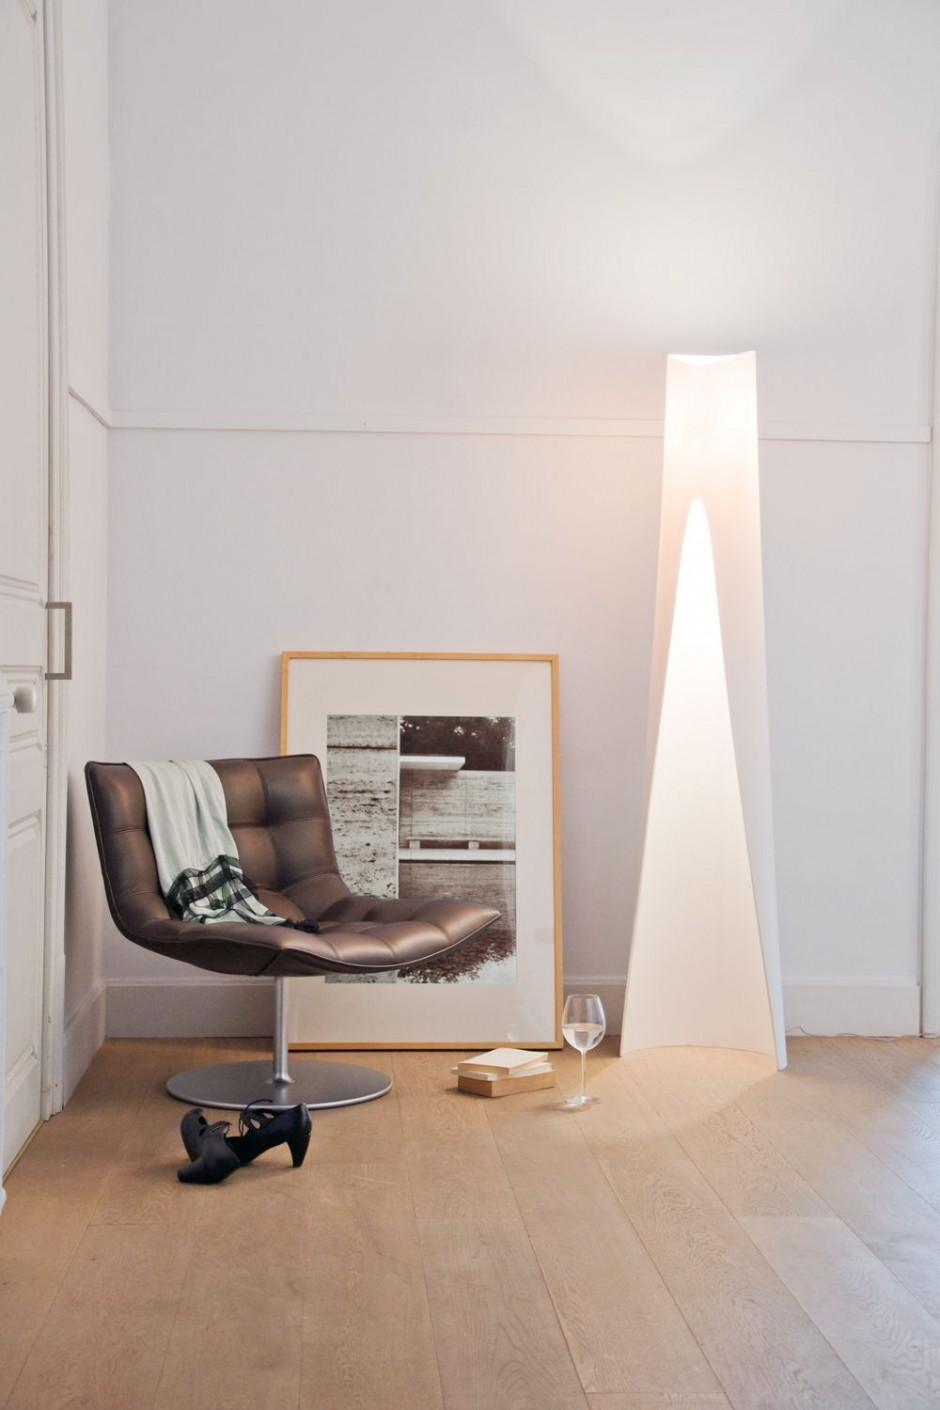 The Suit Lamp by Oriol Llahona for Alma Light